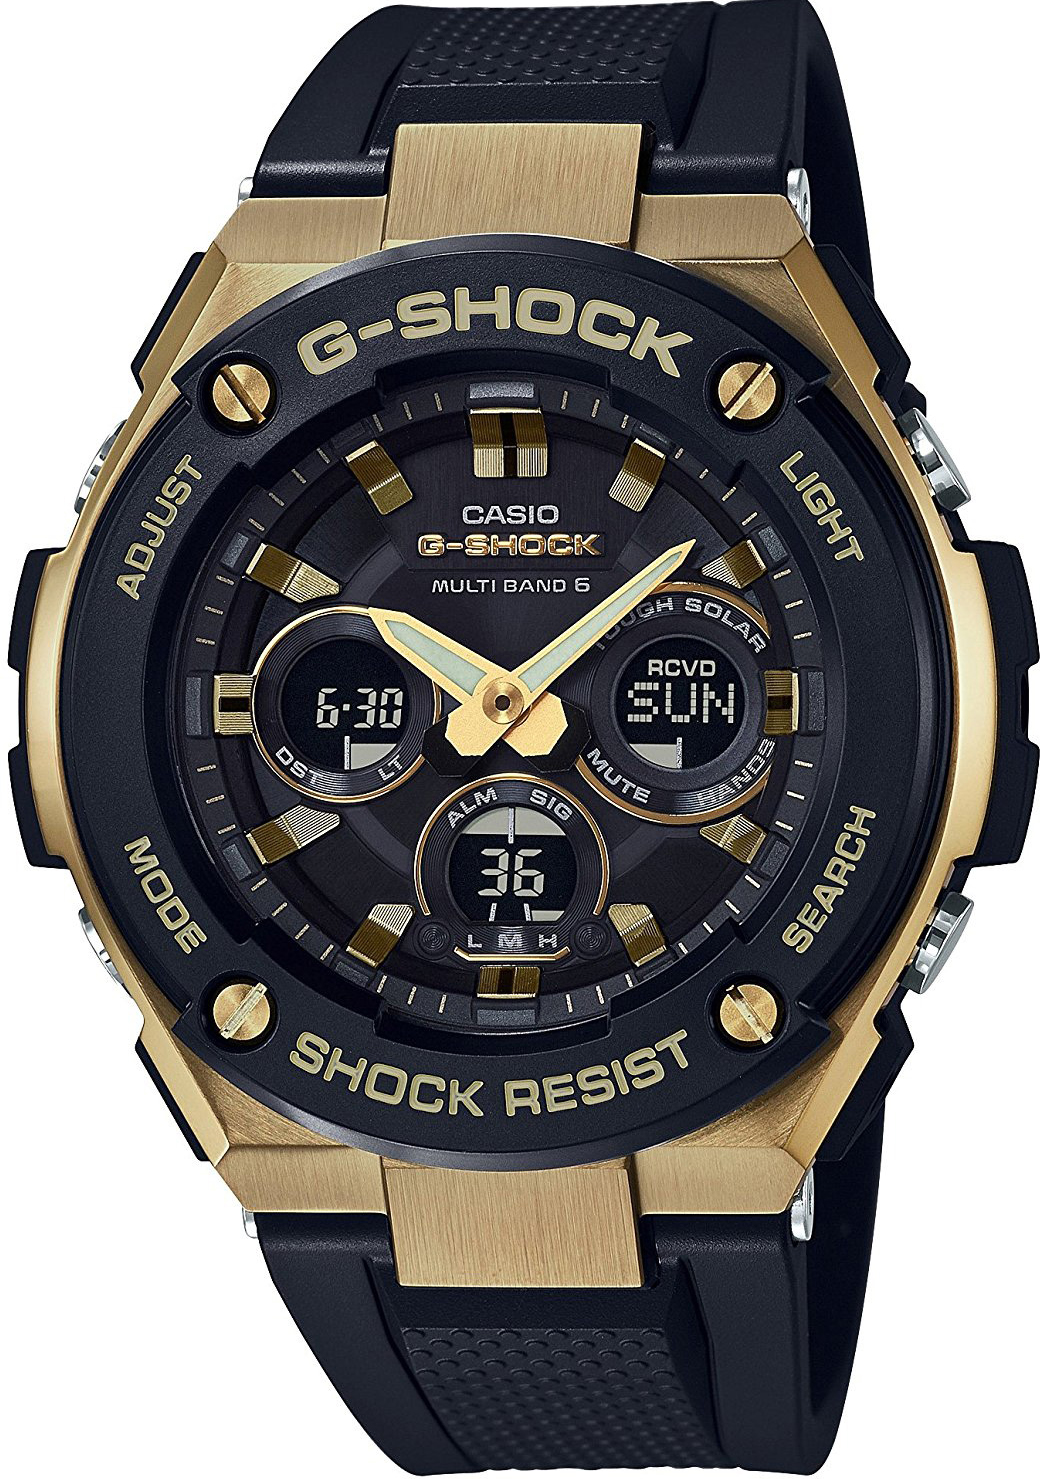 Casio G-shock G-Steel GST-W300G-1A9 casio prg 300 1a9 casio